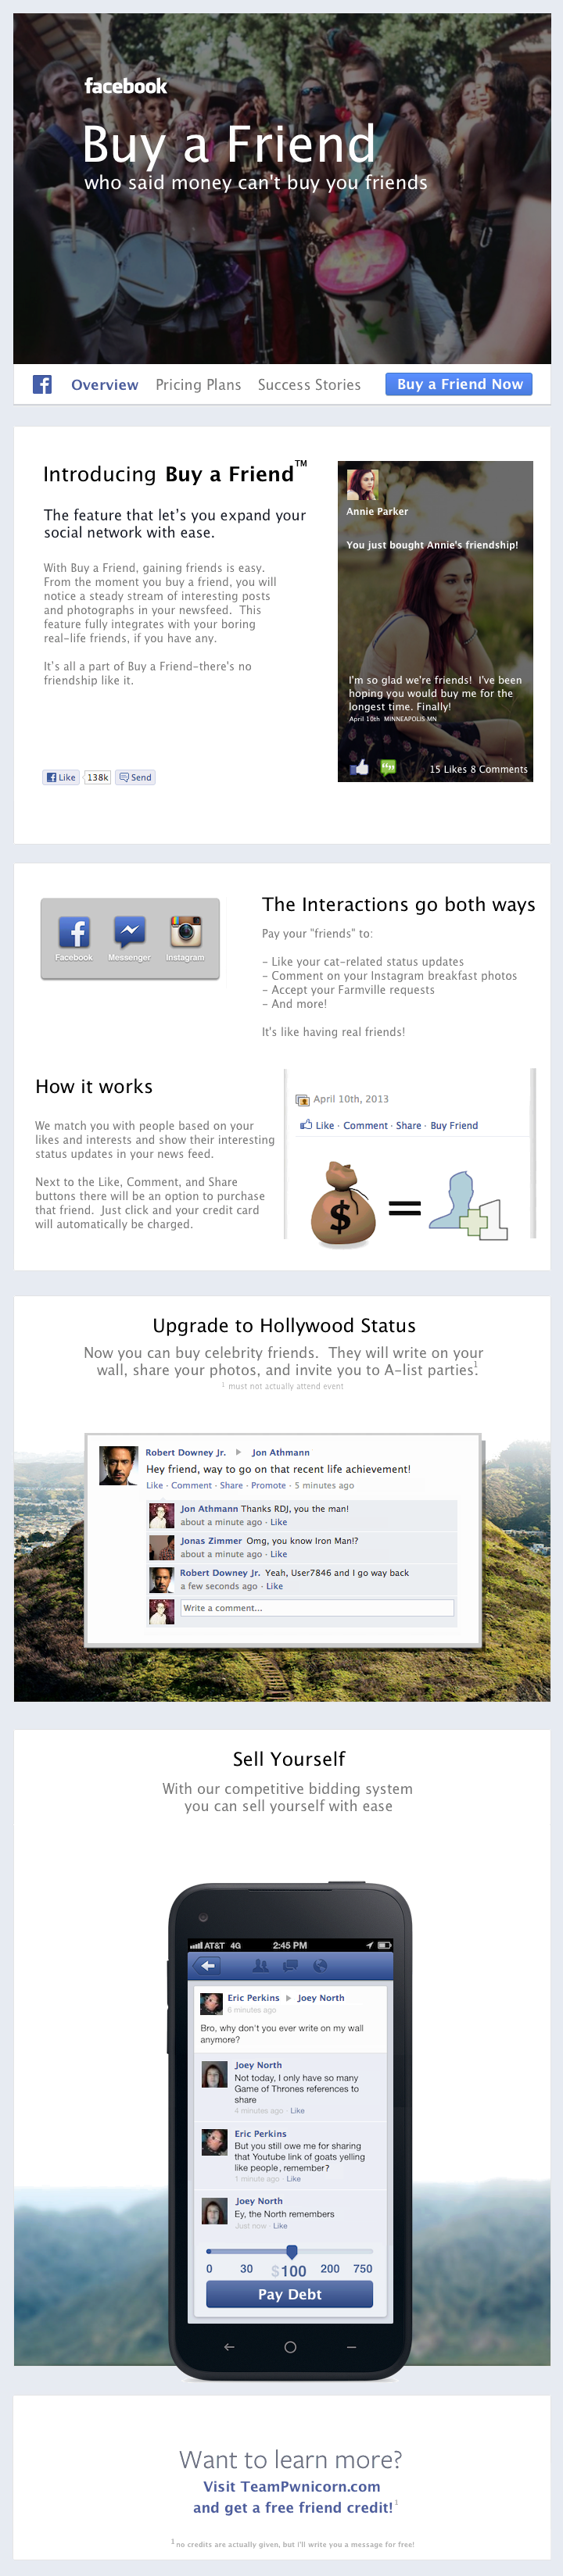 Now facebook lets you buy friends